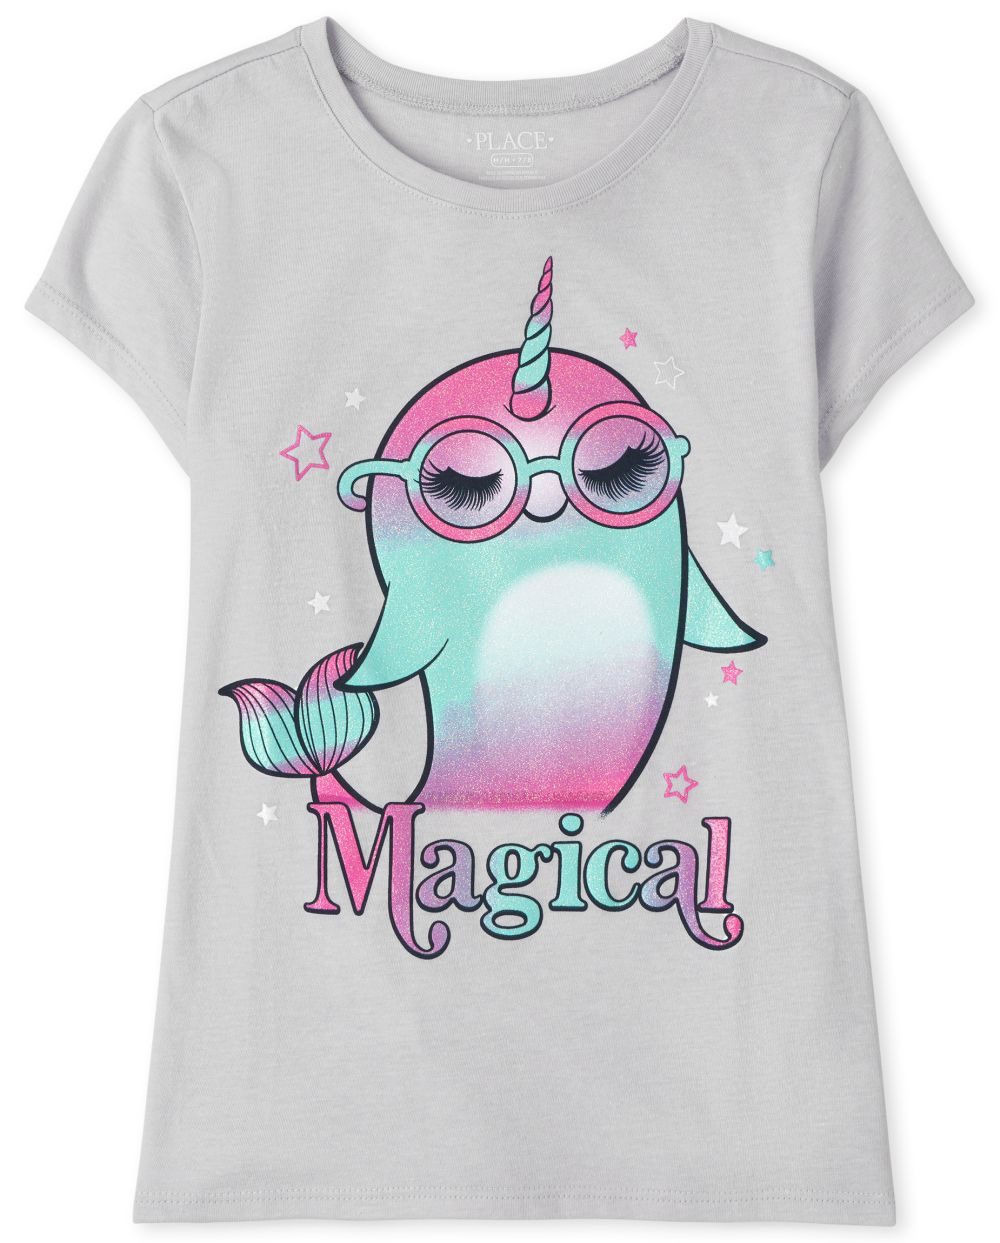 Magical Narwhal Graphic Tee - Blue T-Shirt